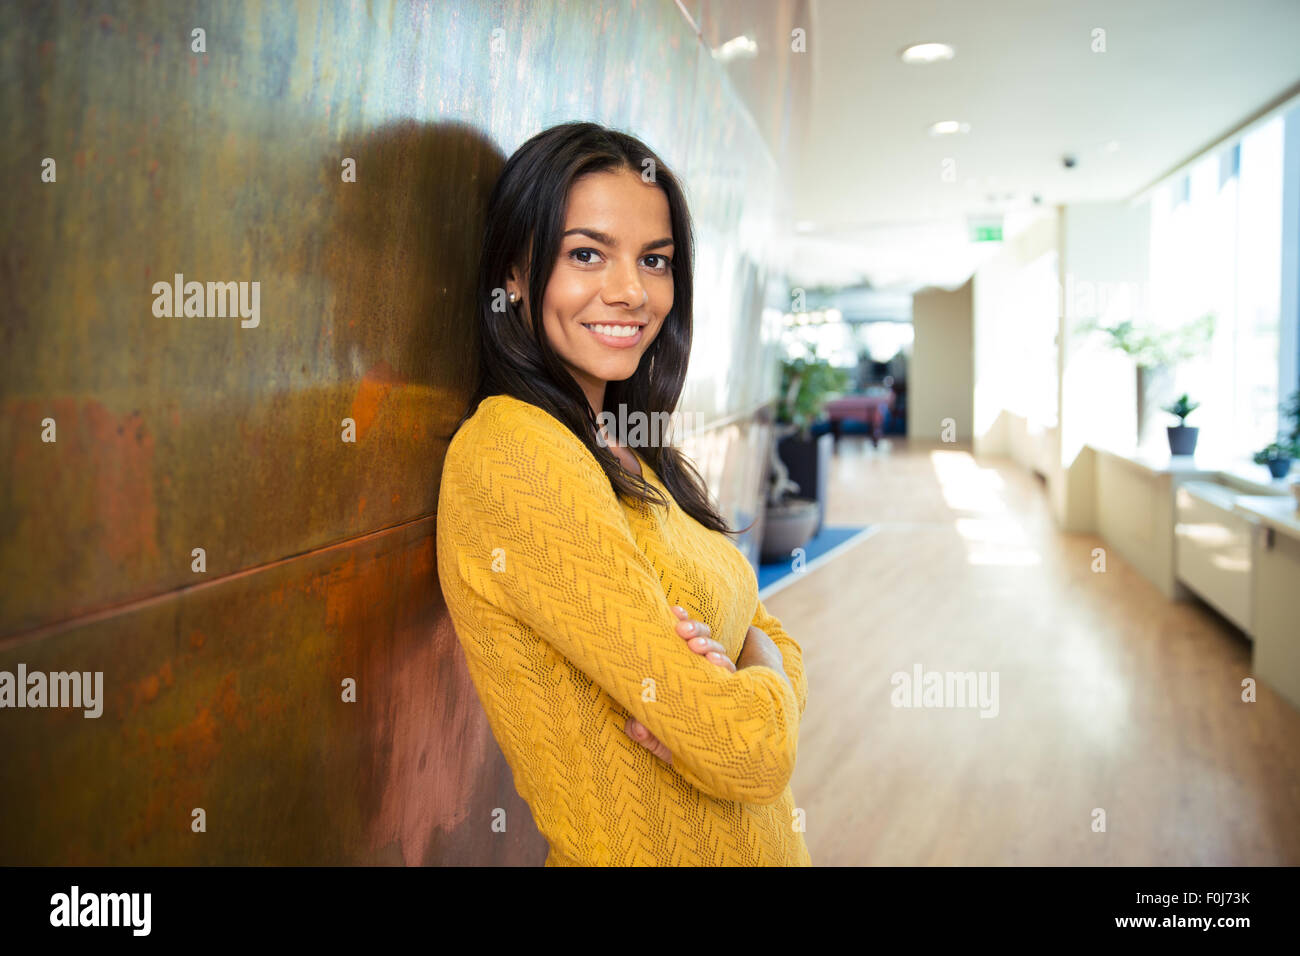 Portrait of a smiling Pretty woman with arms folded in hallway Photo Stock